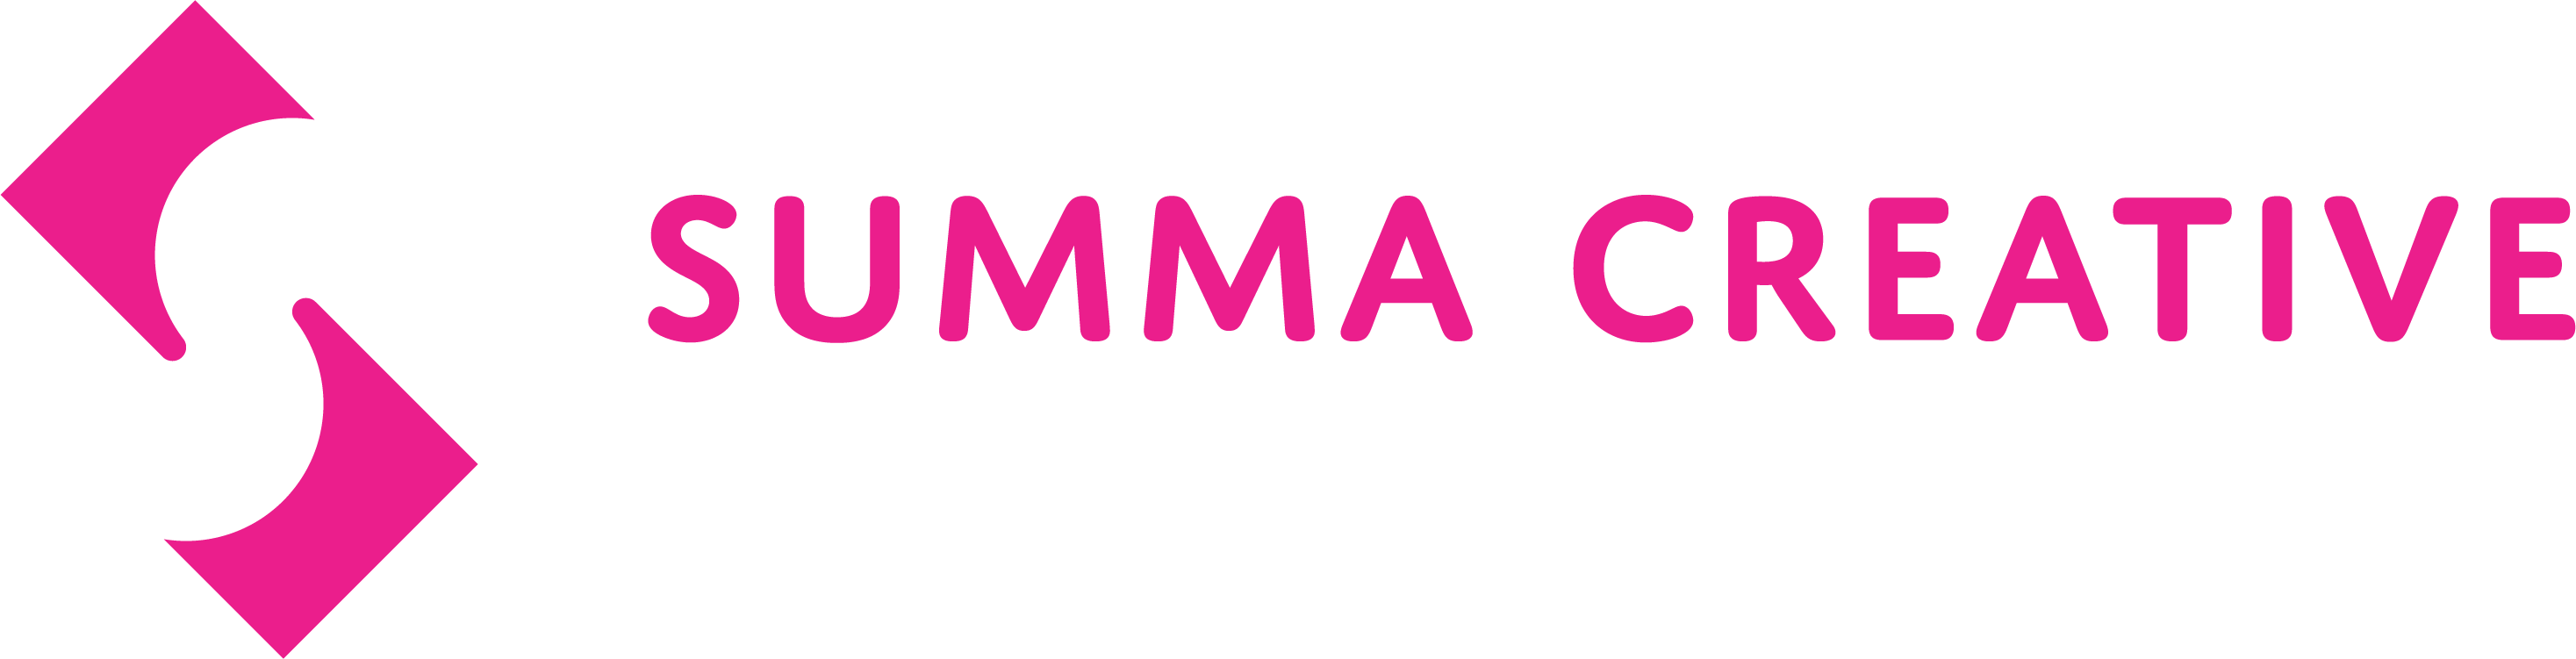 Summa Creative Logo